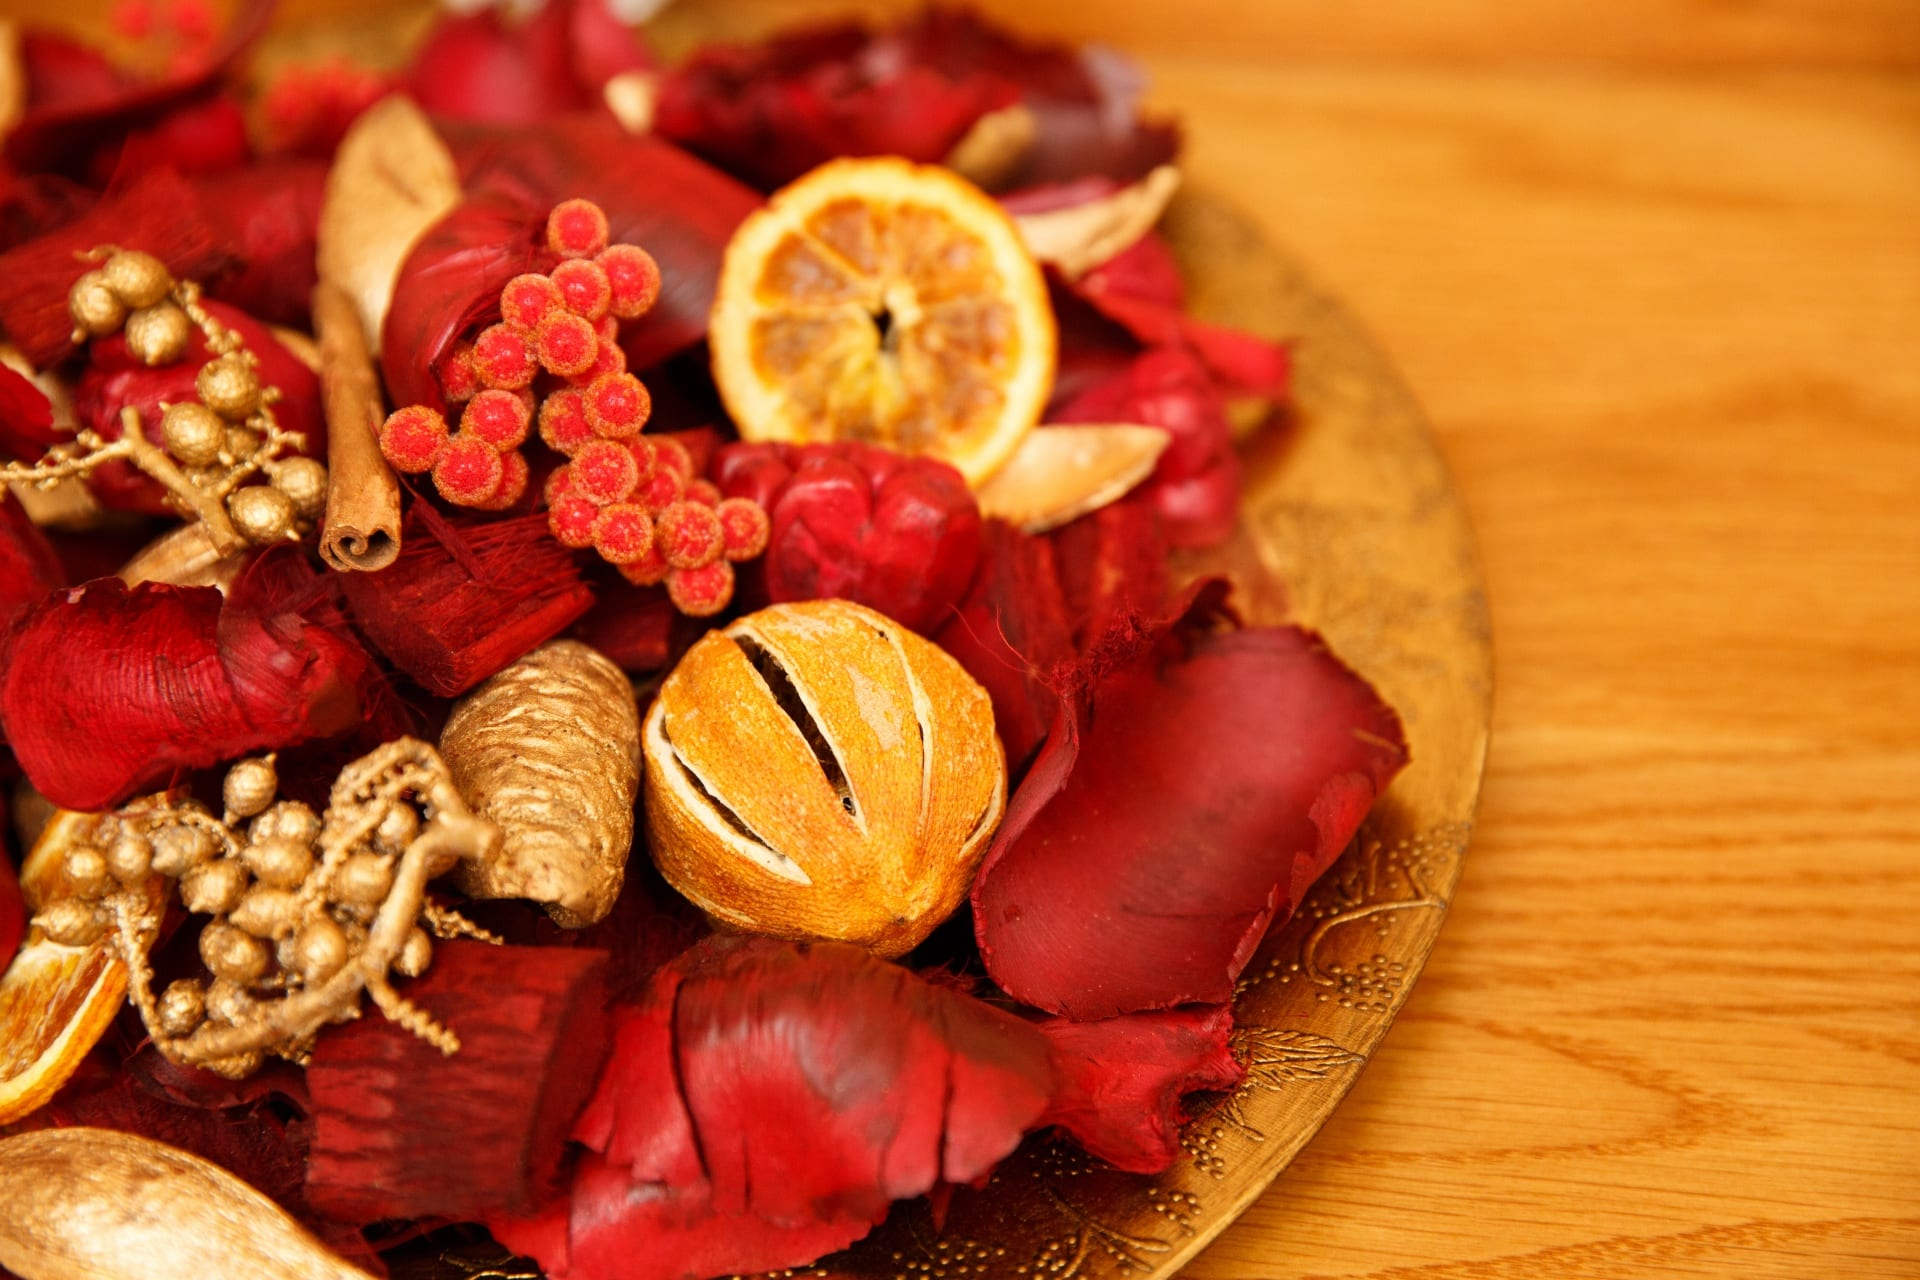 Get a Potpourri or Make a Stove Simmer